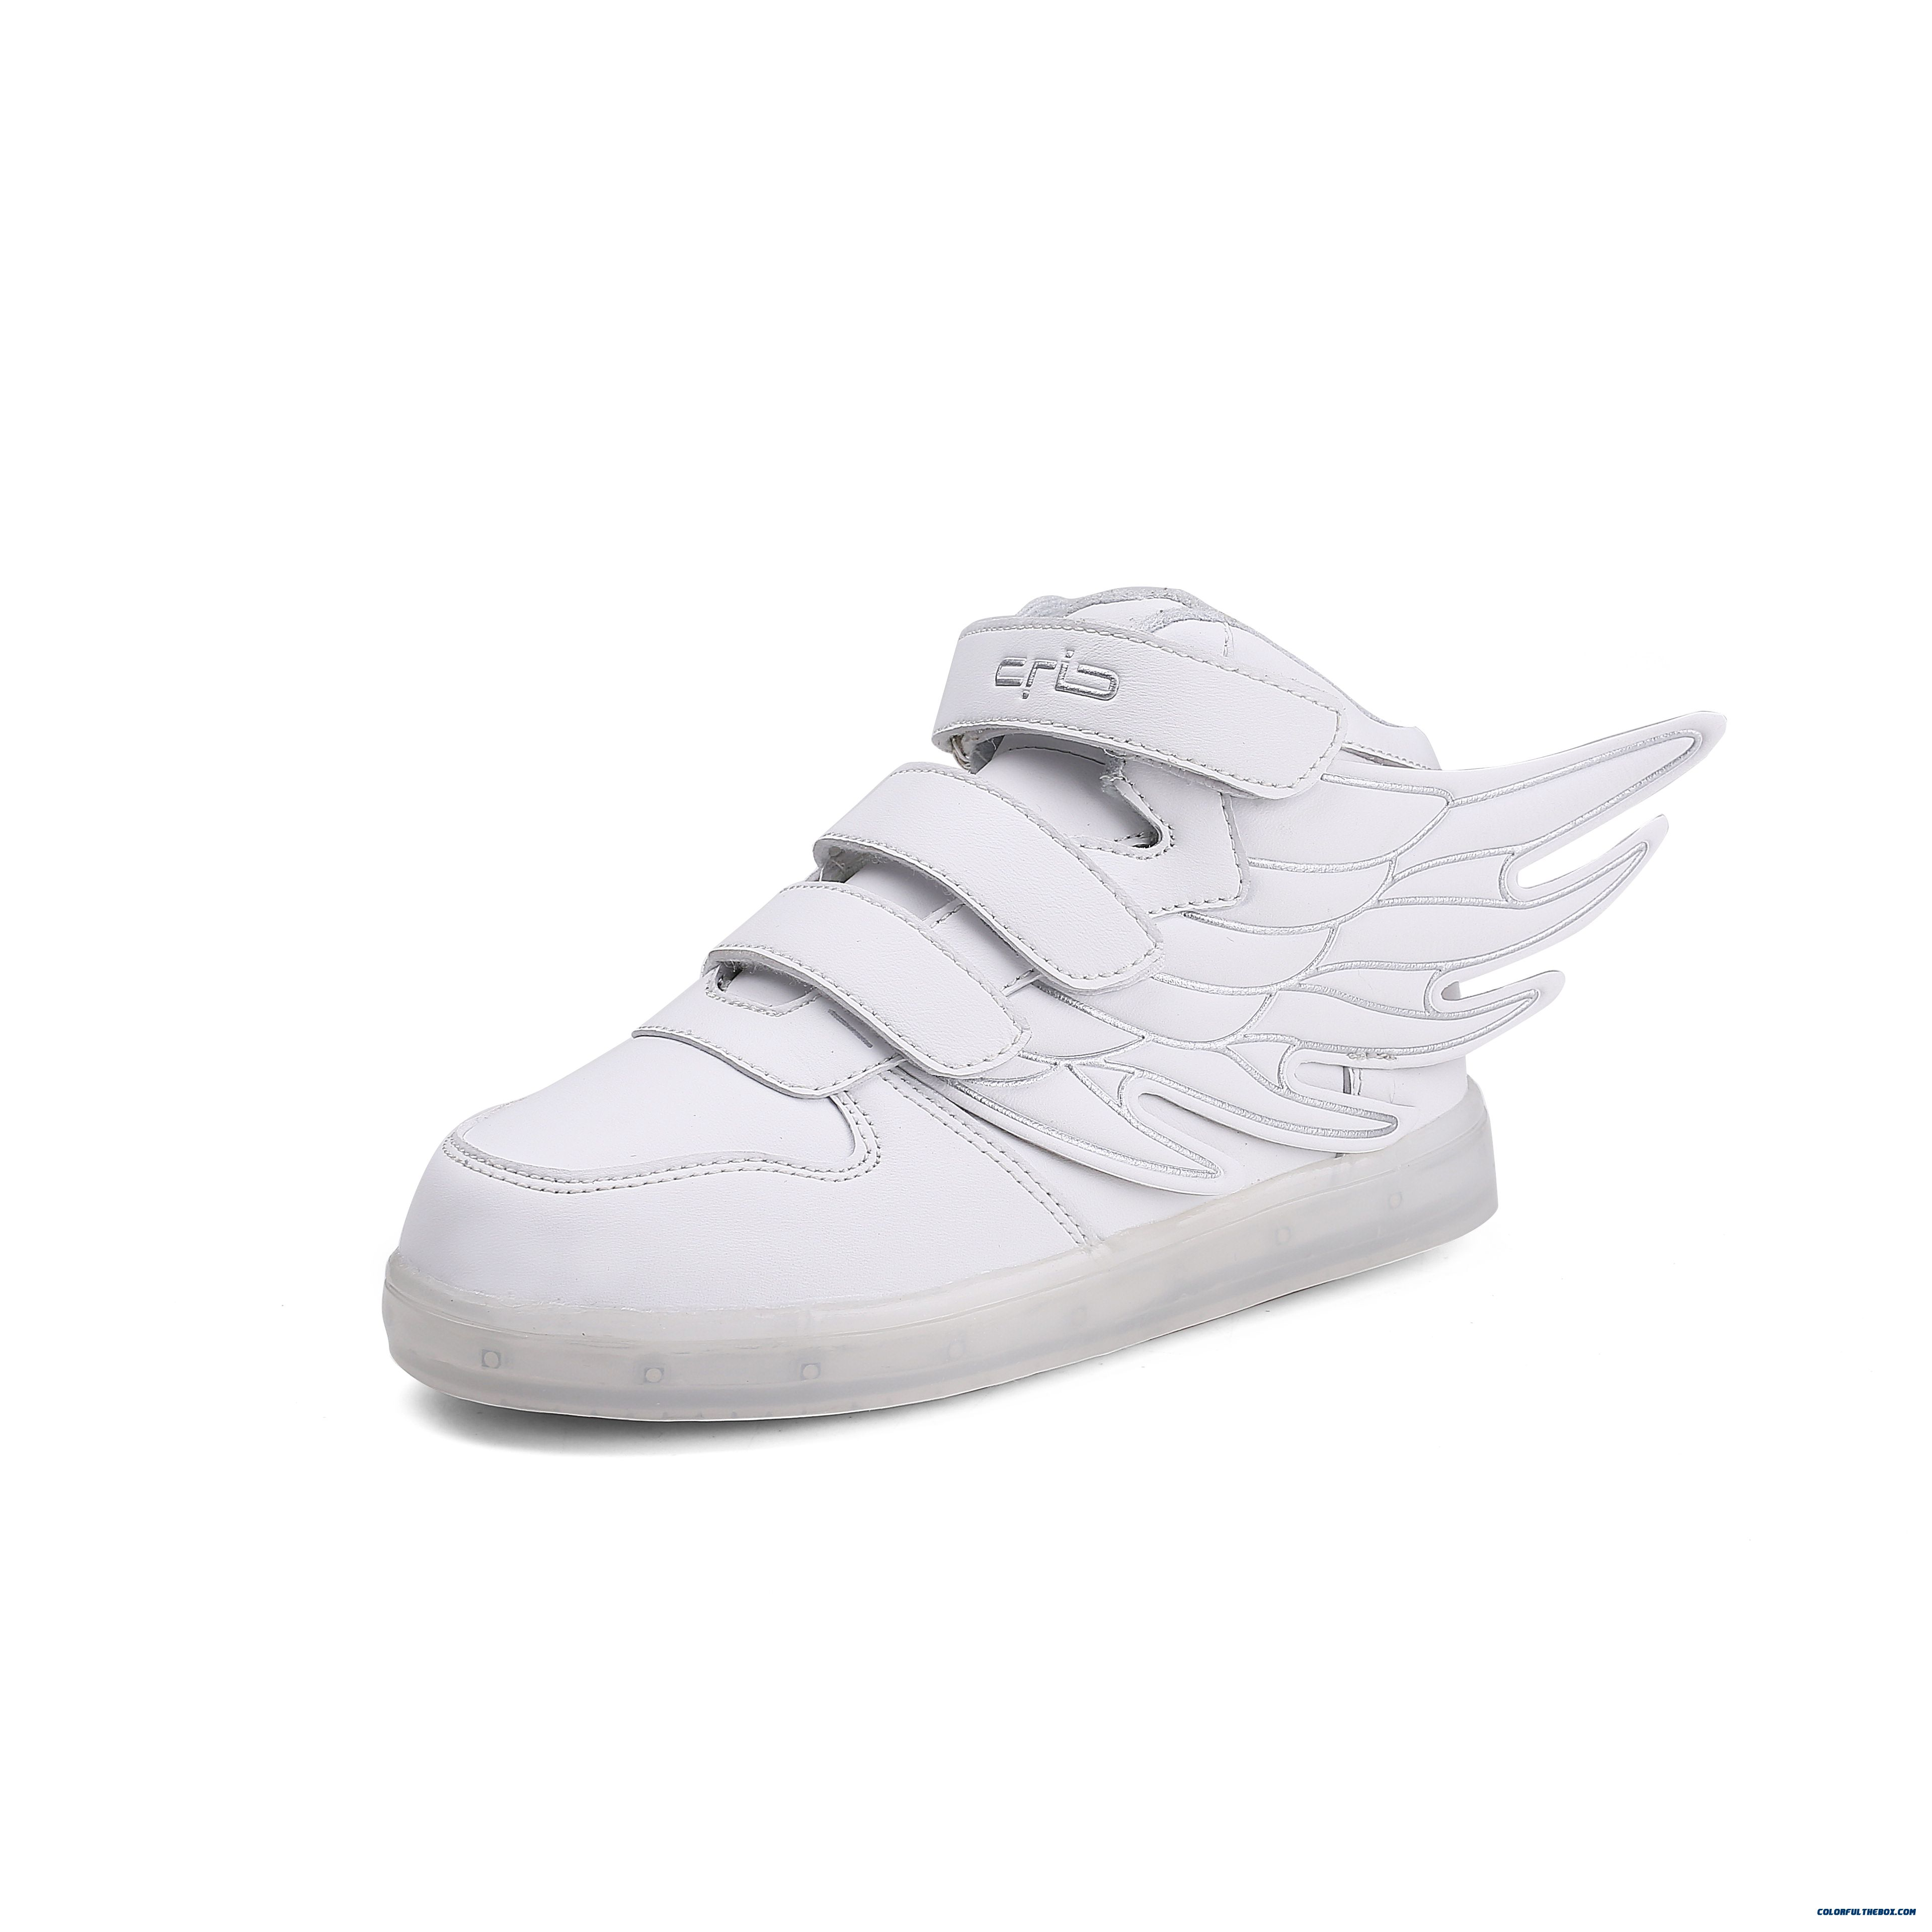 New Trend Of Sports Kids Bpys Shoes Luminous Skateboarding Shoes Running Shoes Winged Modeling Design